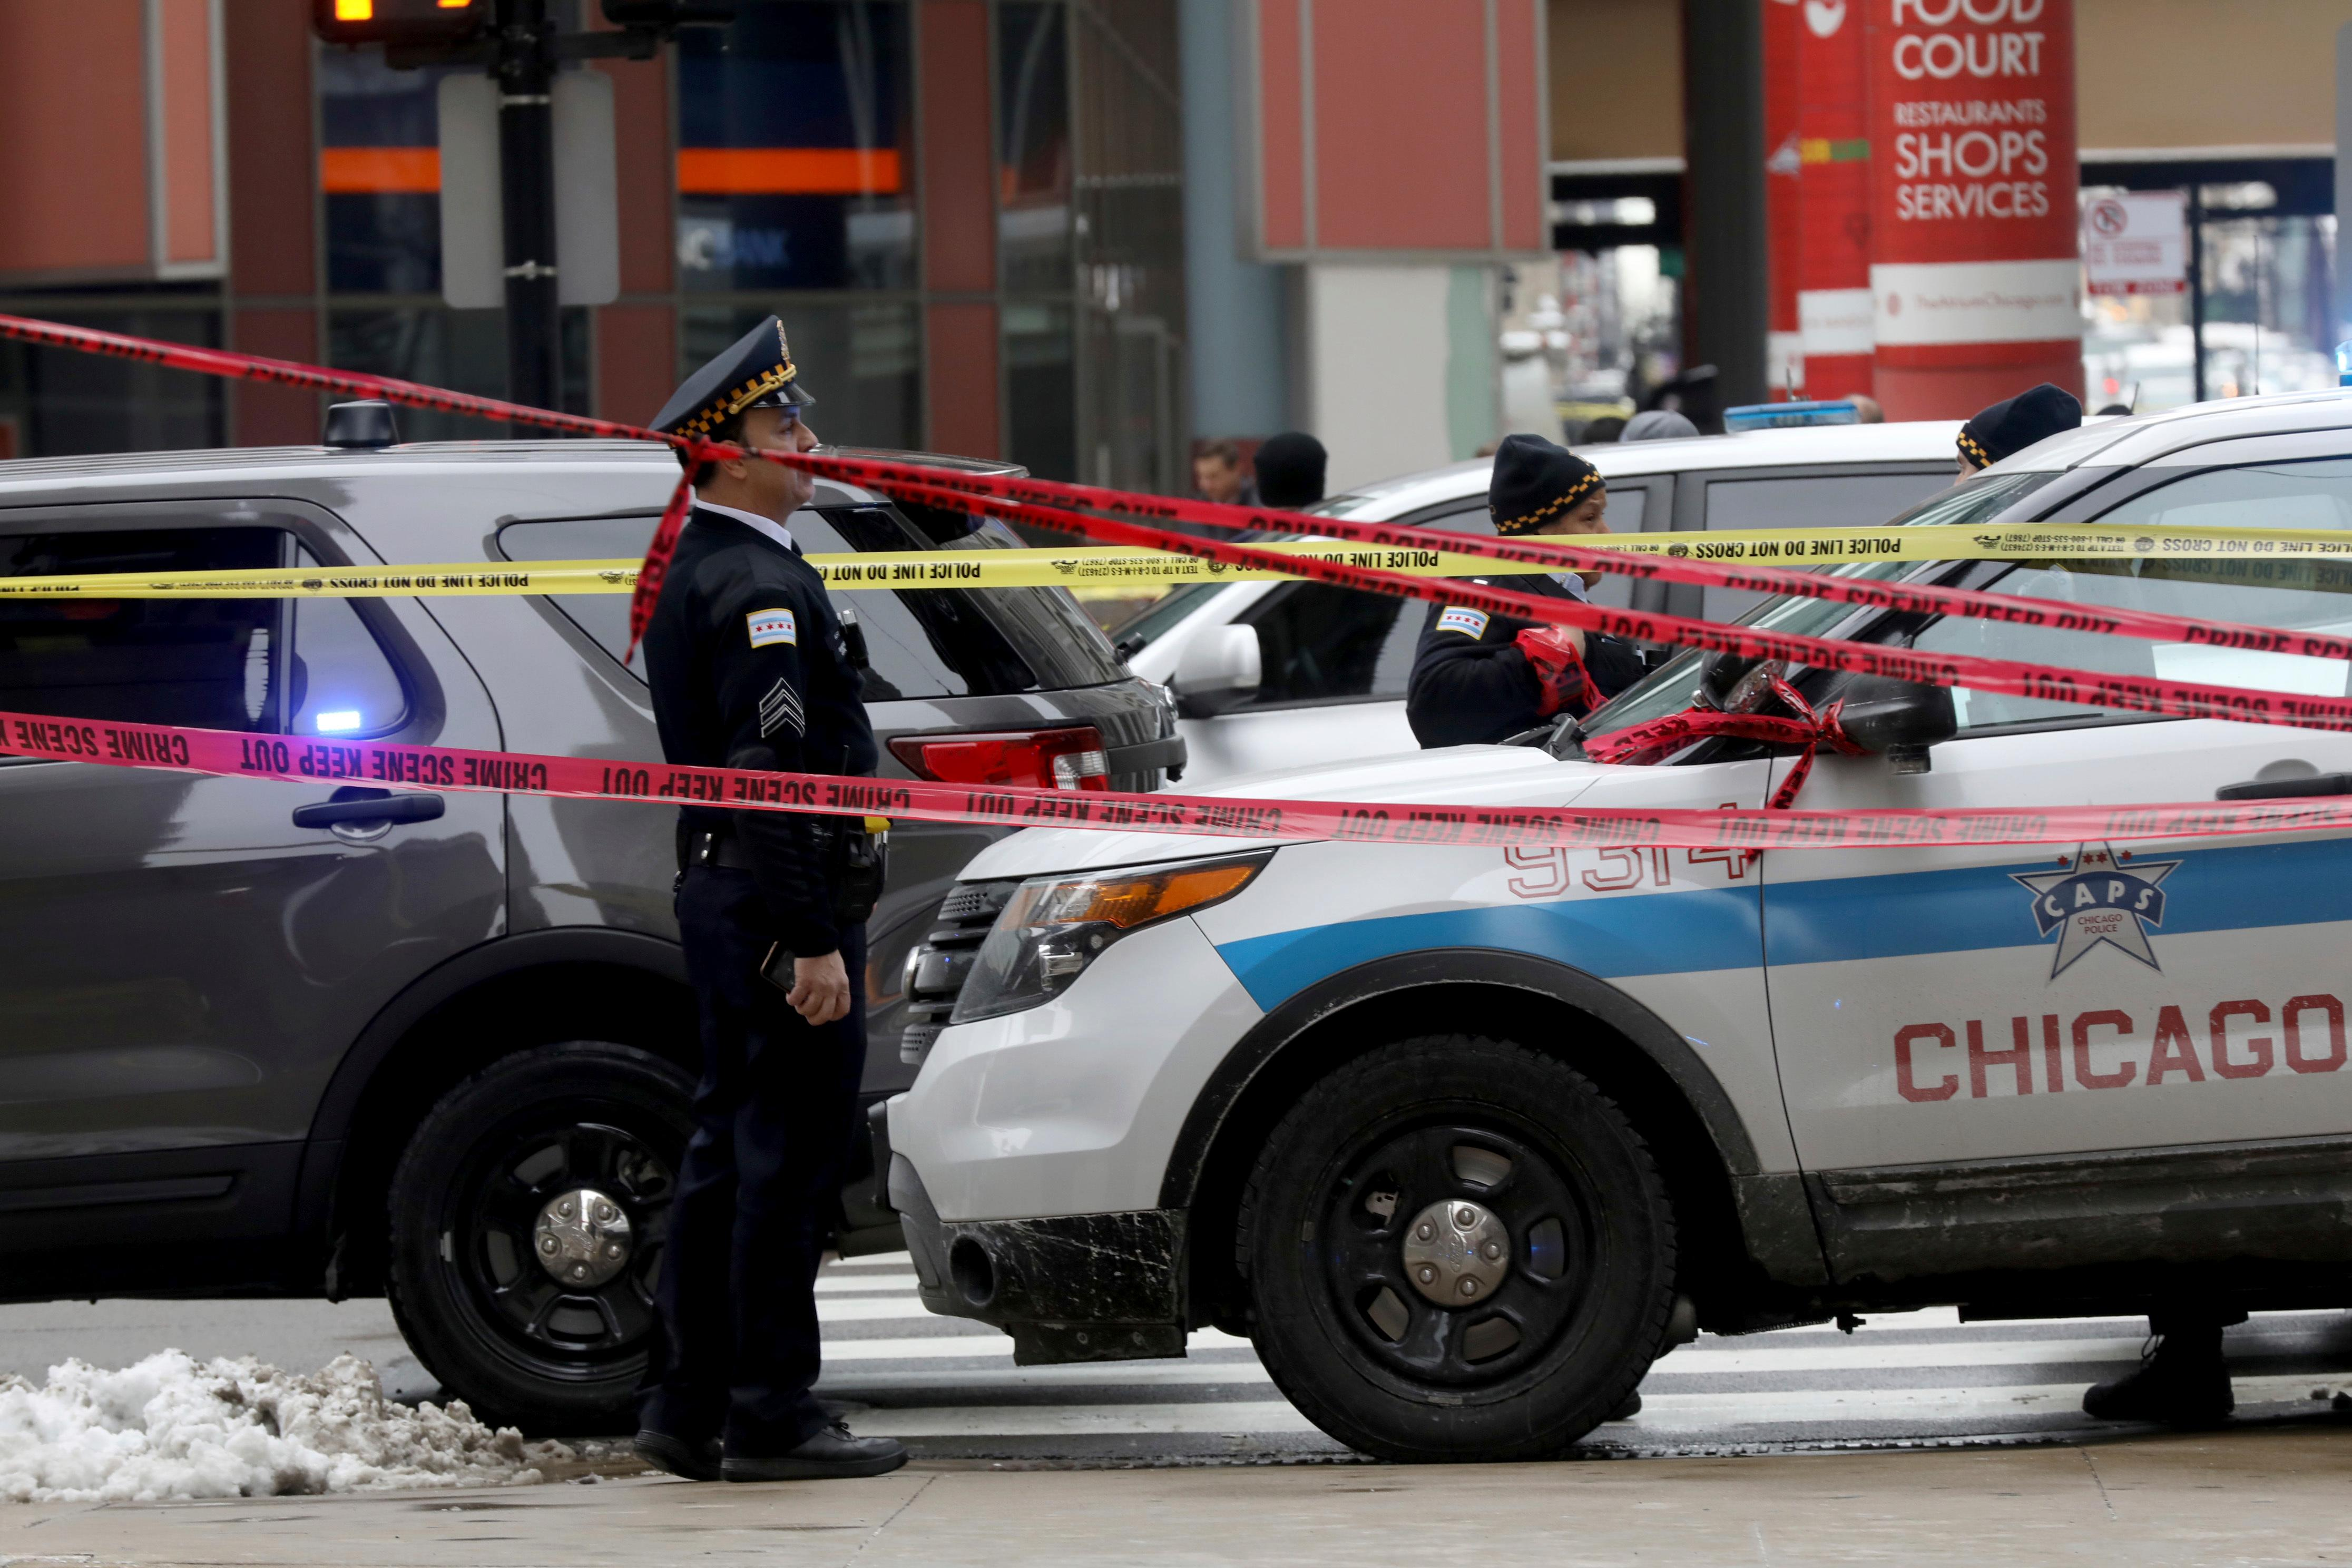 Police guard the scene where an off-duty officer was shot while assisting a tactical team at a state government office building, Tuesday, Feb. 13, 2018, in Chicago. (John J. Kim/Chicago Tribune via AP)